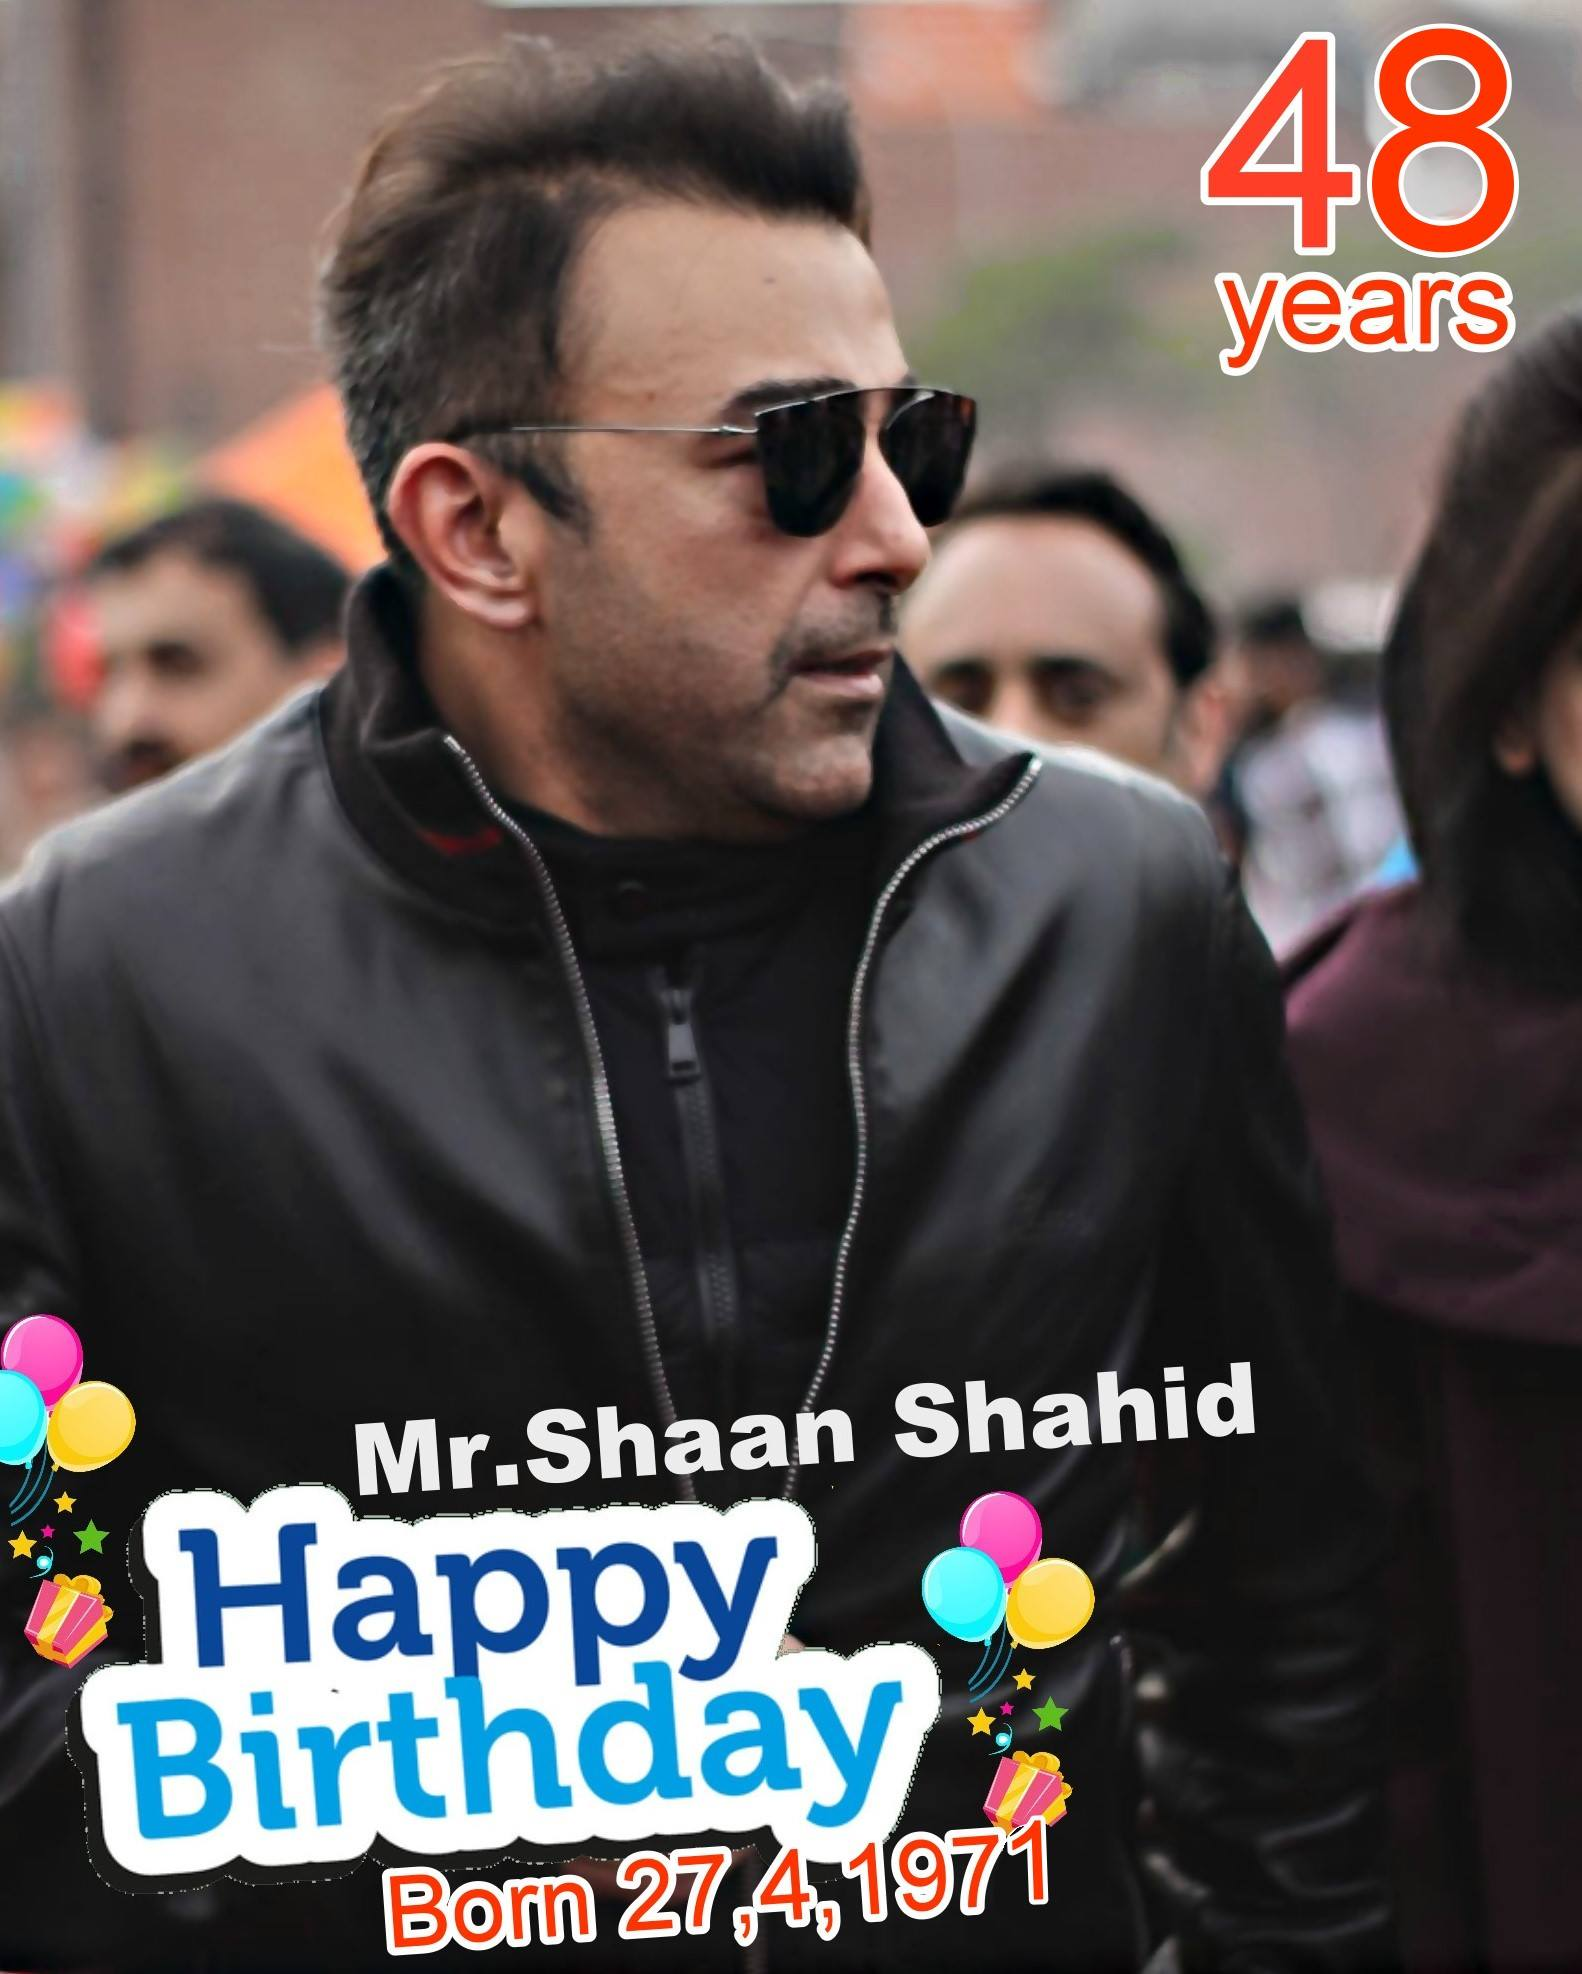 Shaan 48th birthday